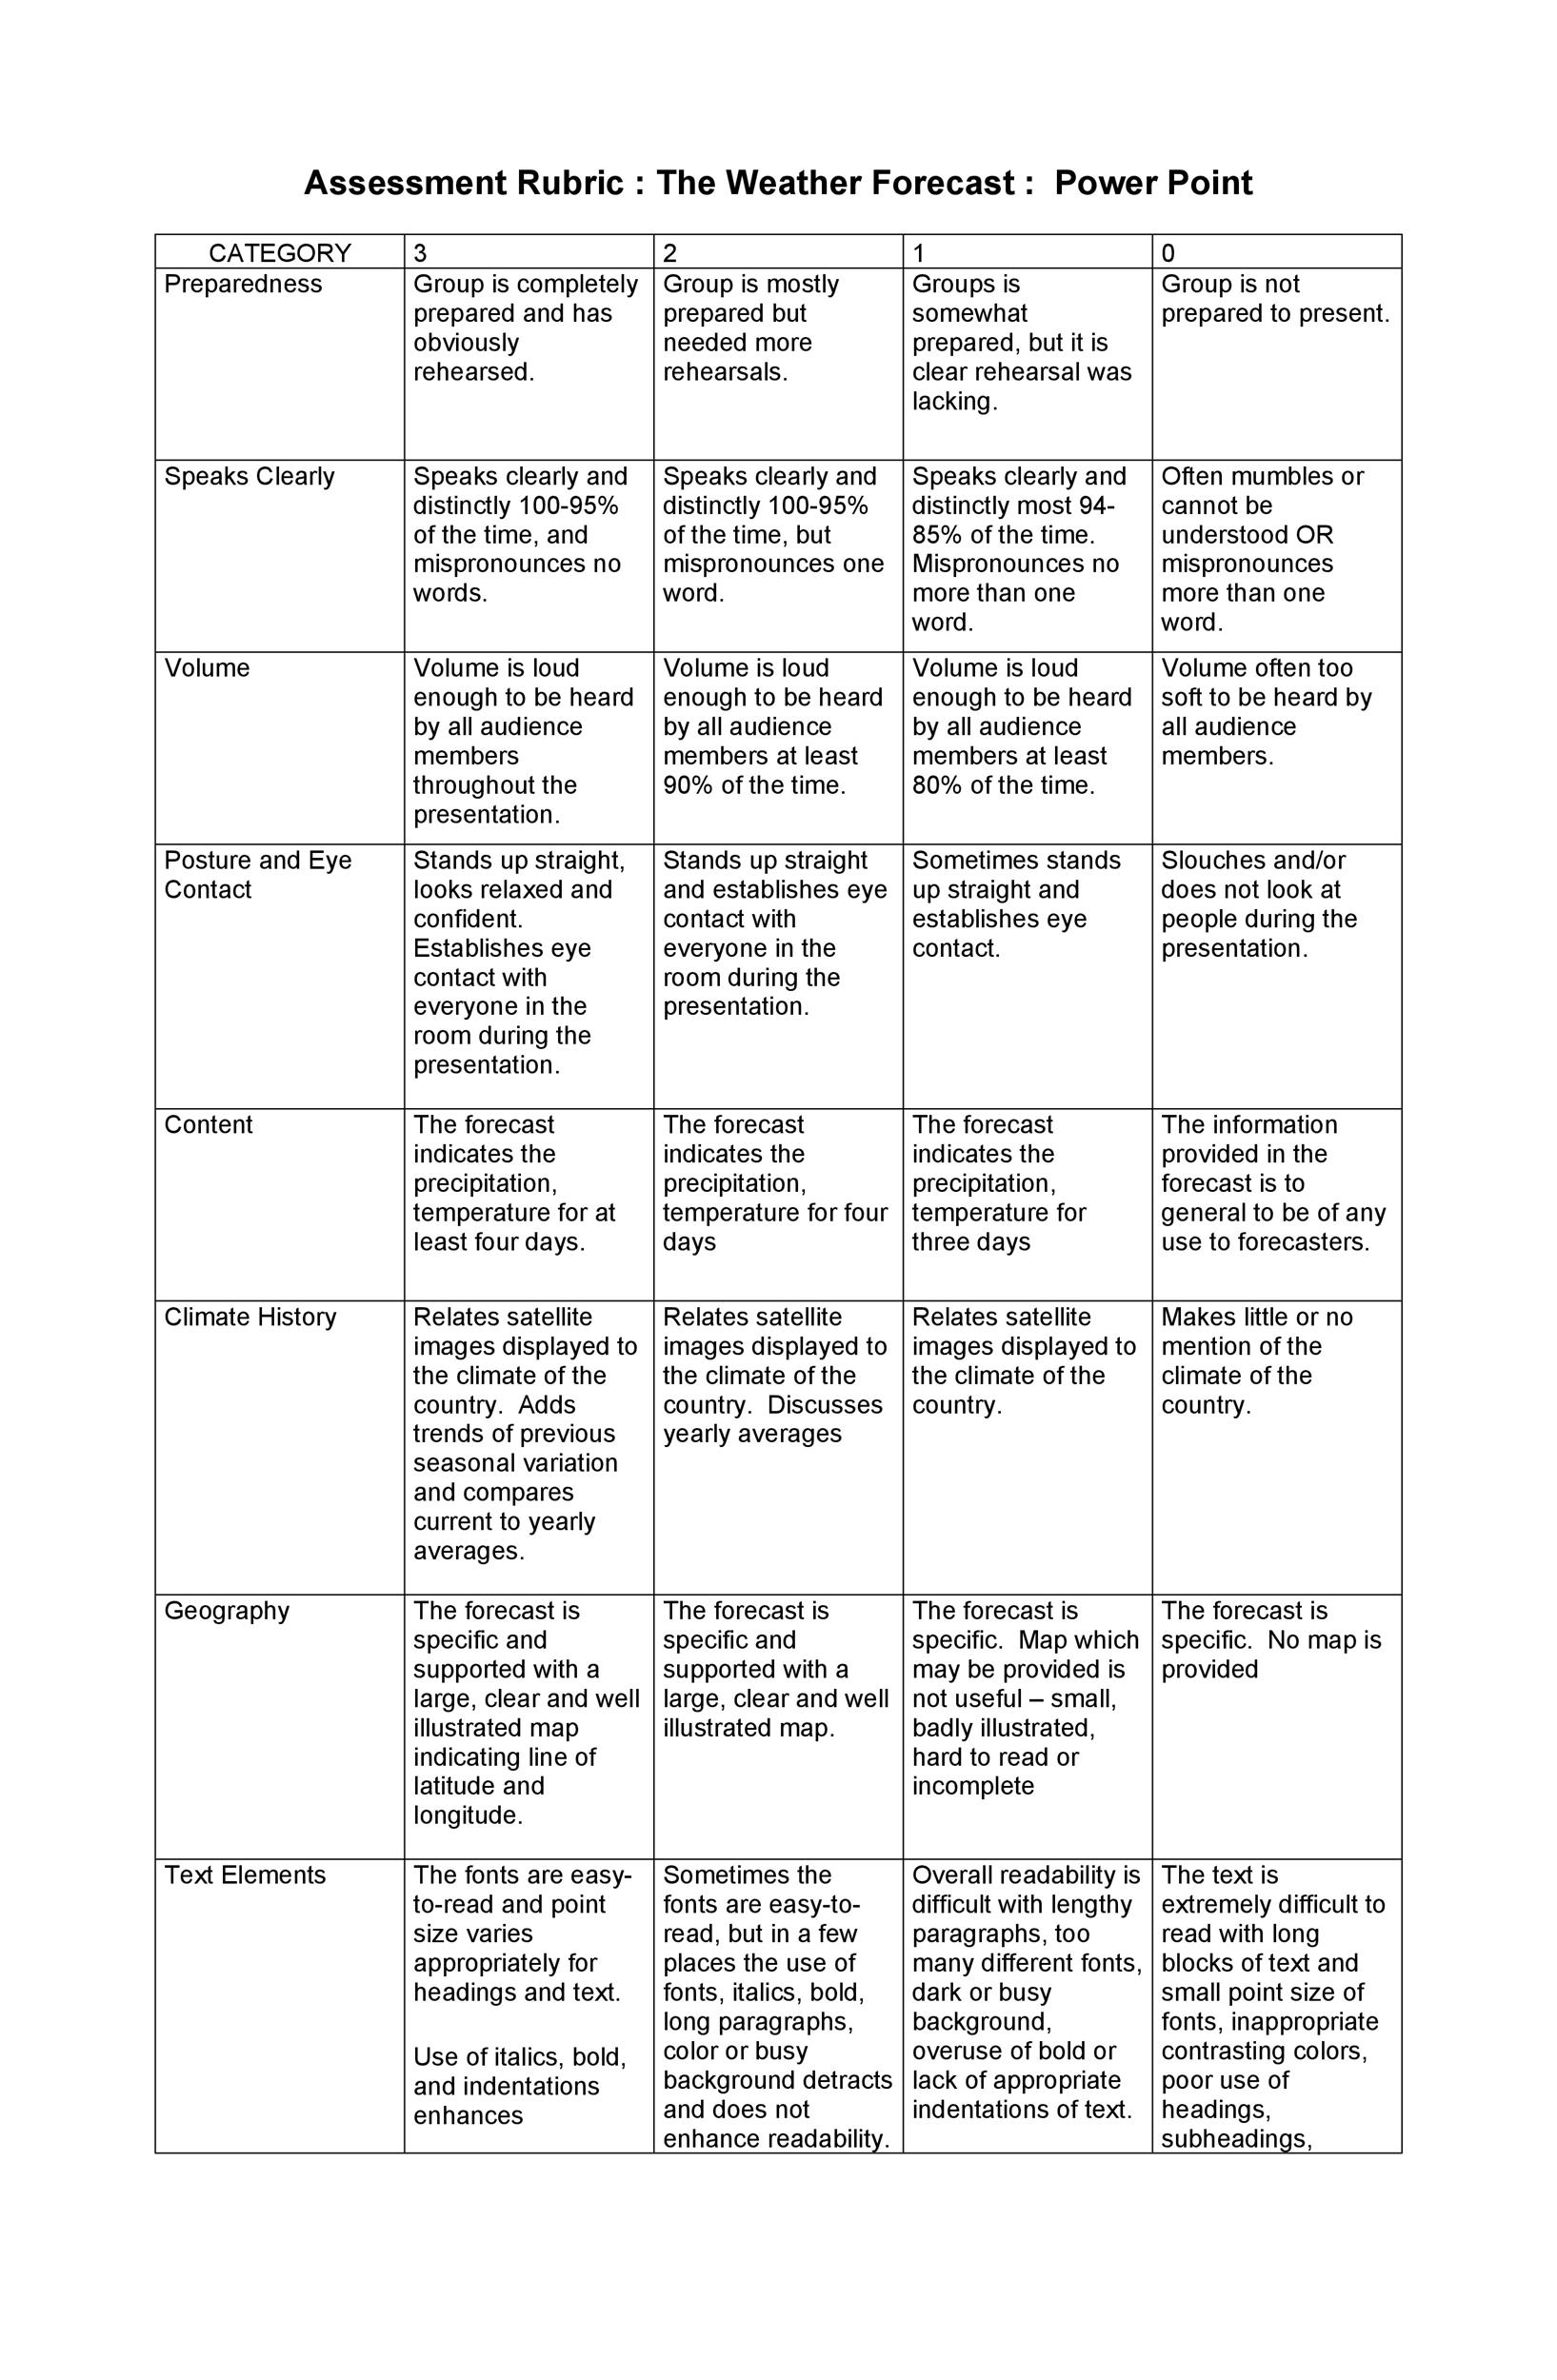 Free Grading Rubric Template 24